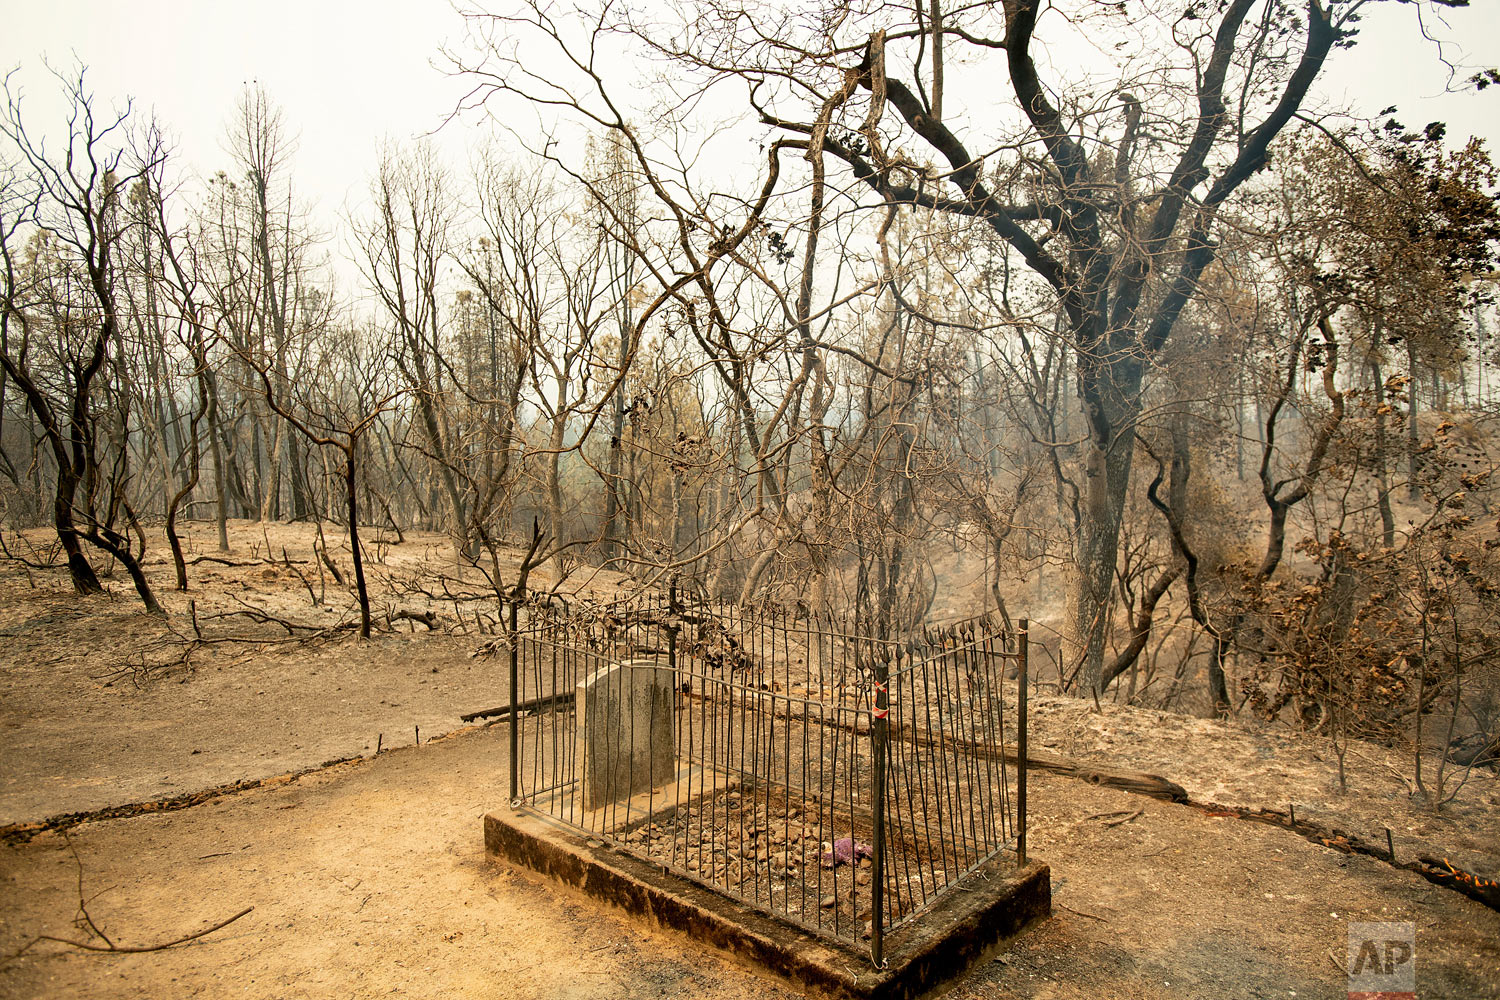 The historic Pioneer Baby's Grave rests among trees scorched by the Carr Fire in Shasta, Calif., on Friday, July 27, 2018. The fire rapidly expanded Thursday when erratic flames swept through the historic Gold Rush town of Shasta and nearby Keswick, then cast the Sacramento River in an orange glow as they jumped the banks into Redding. (AP Photo/Noah Berger)